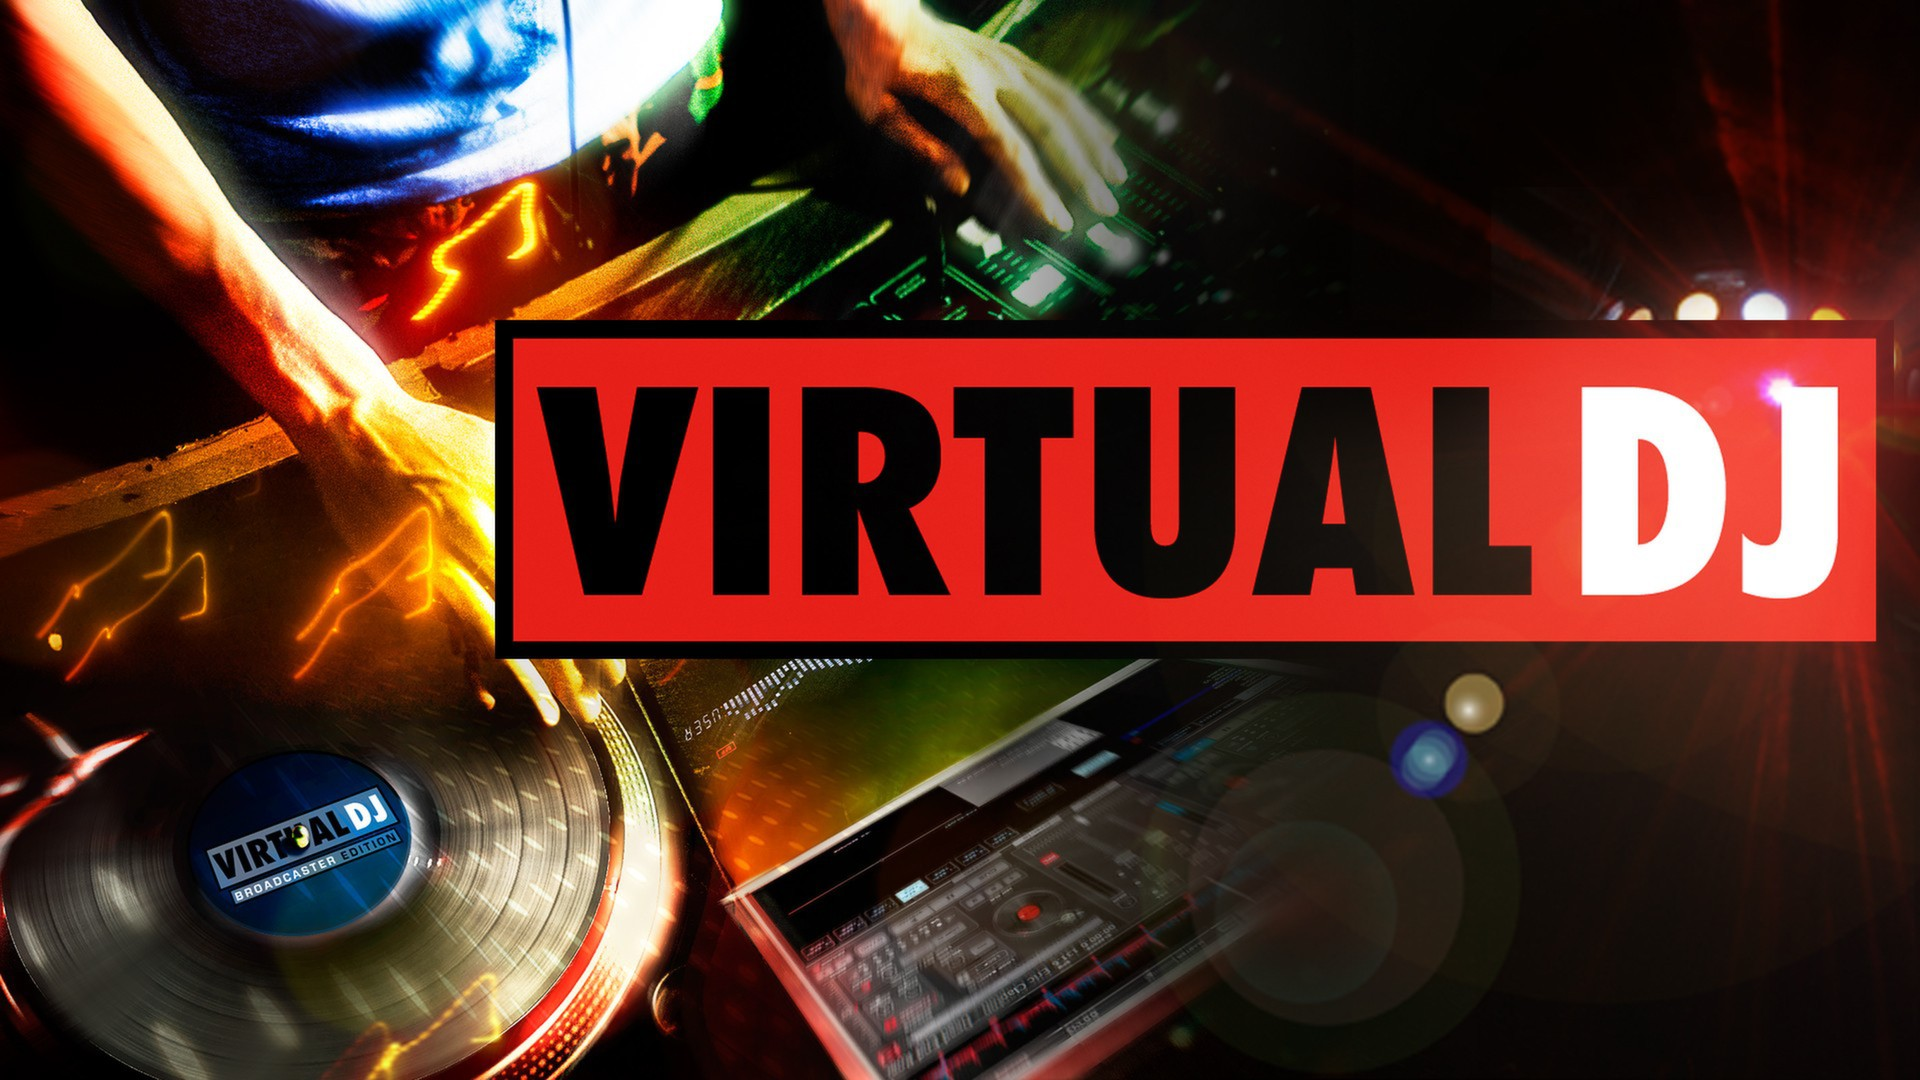 Virtual DJ - Official Site